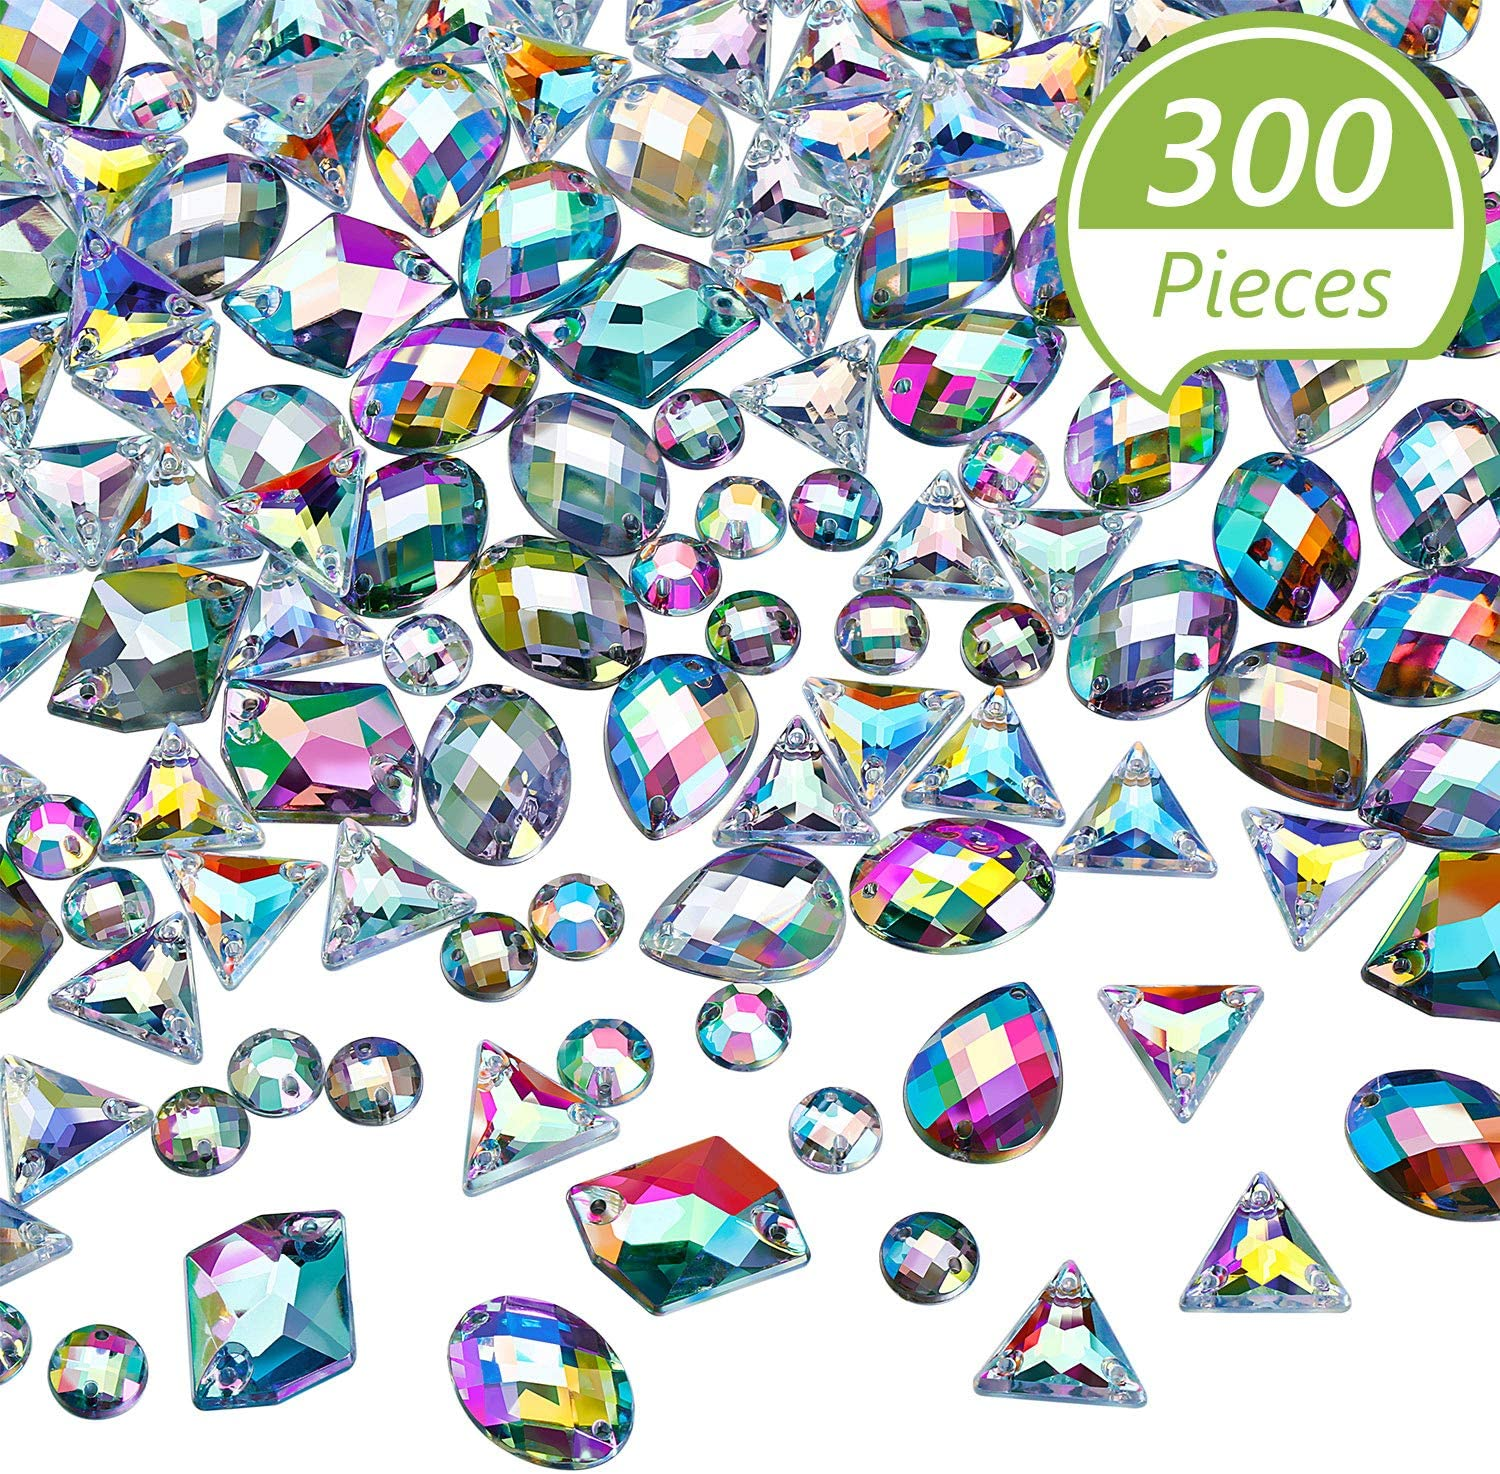 300 Pieces Sew on Rhinestone Sew on crystals Acrylic Gems AB Rhinestones Flatback Crystal Gems for DIY Crafts Dress, Clothes, Shoes, Bag Decorations